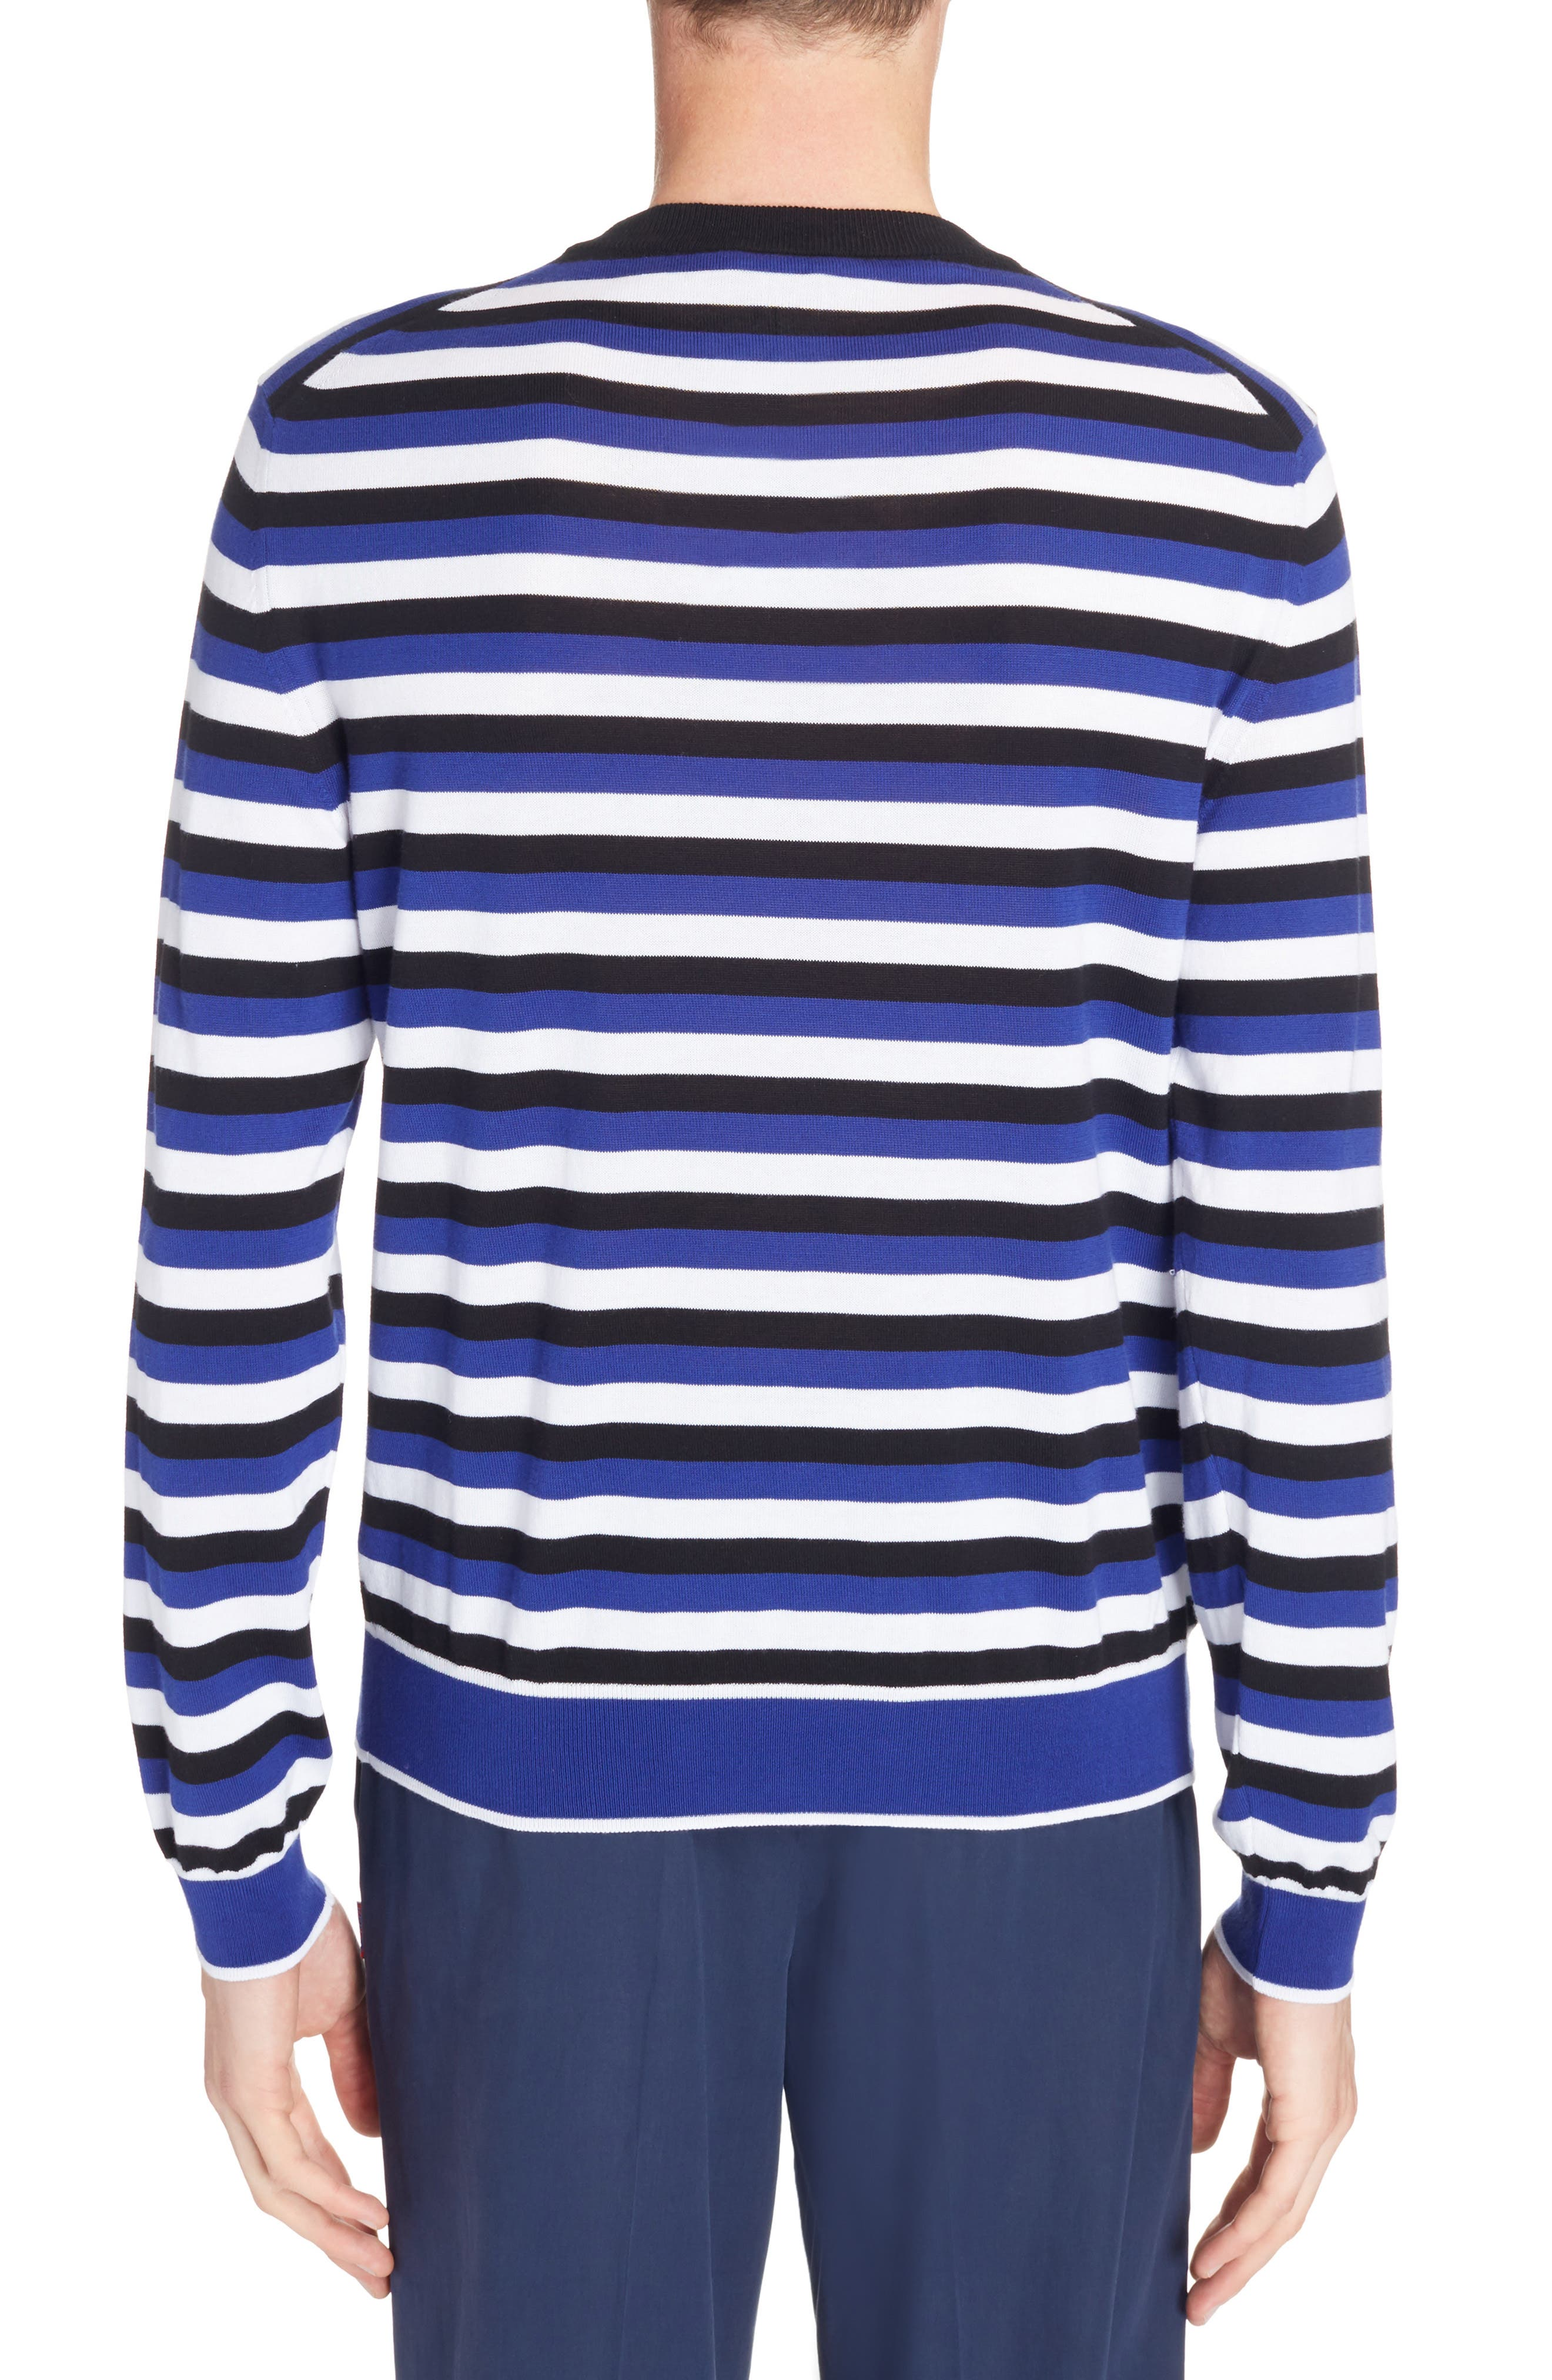 Large K Stripe Sweater,                             Alternate thumbnail 2, color,                             French Blue